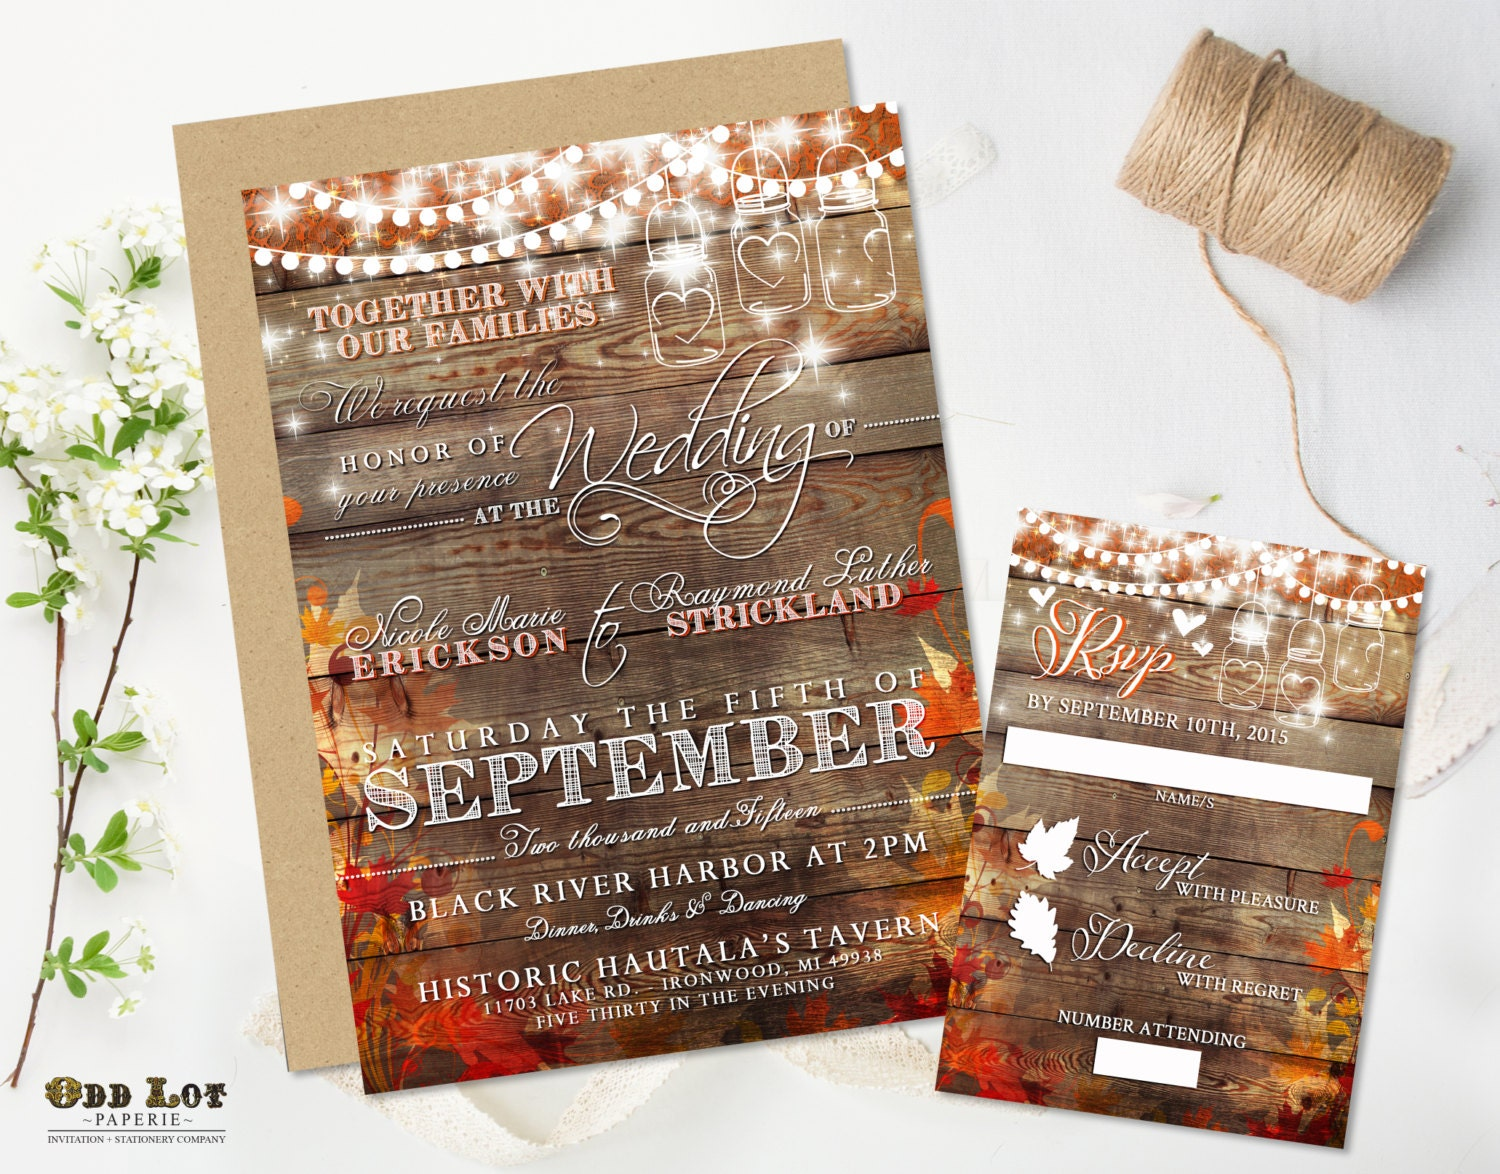 So many subtle details in this Rustic Wedding Fall Invitation and RSVP set. Features a worn rustic wood plank background with subtle fall leaves and flourish el